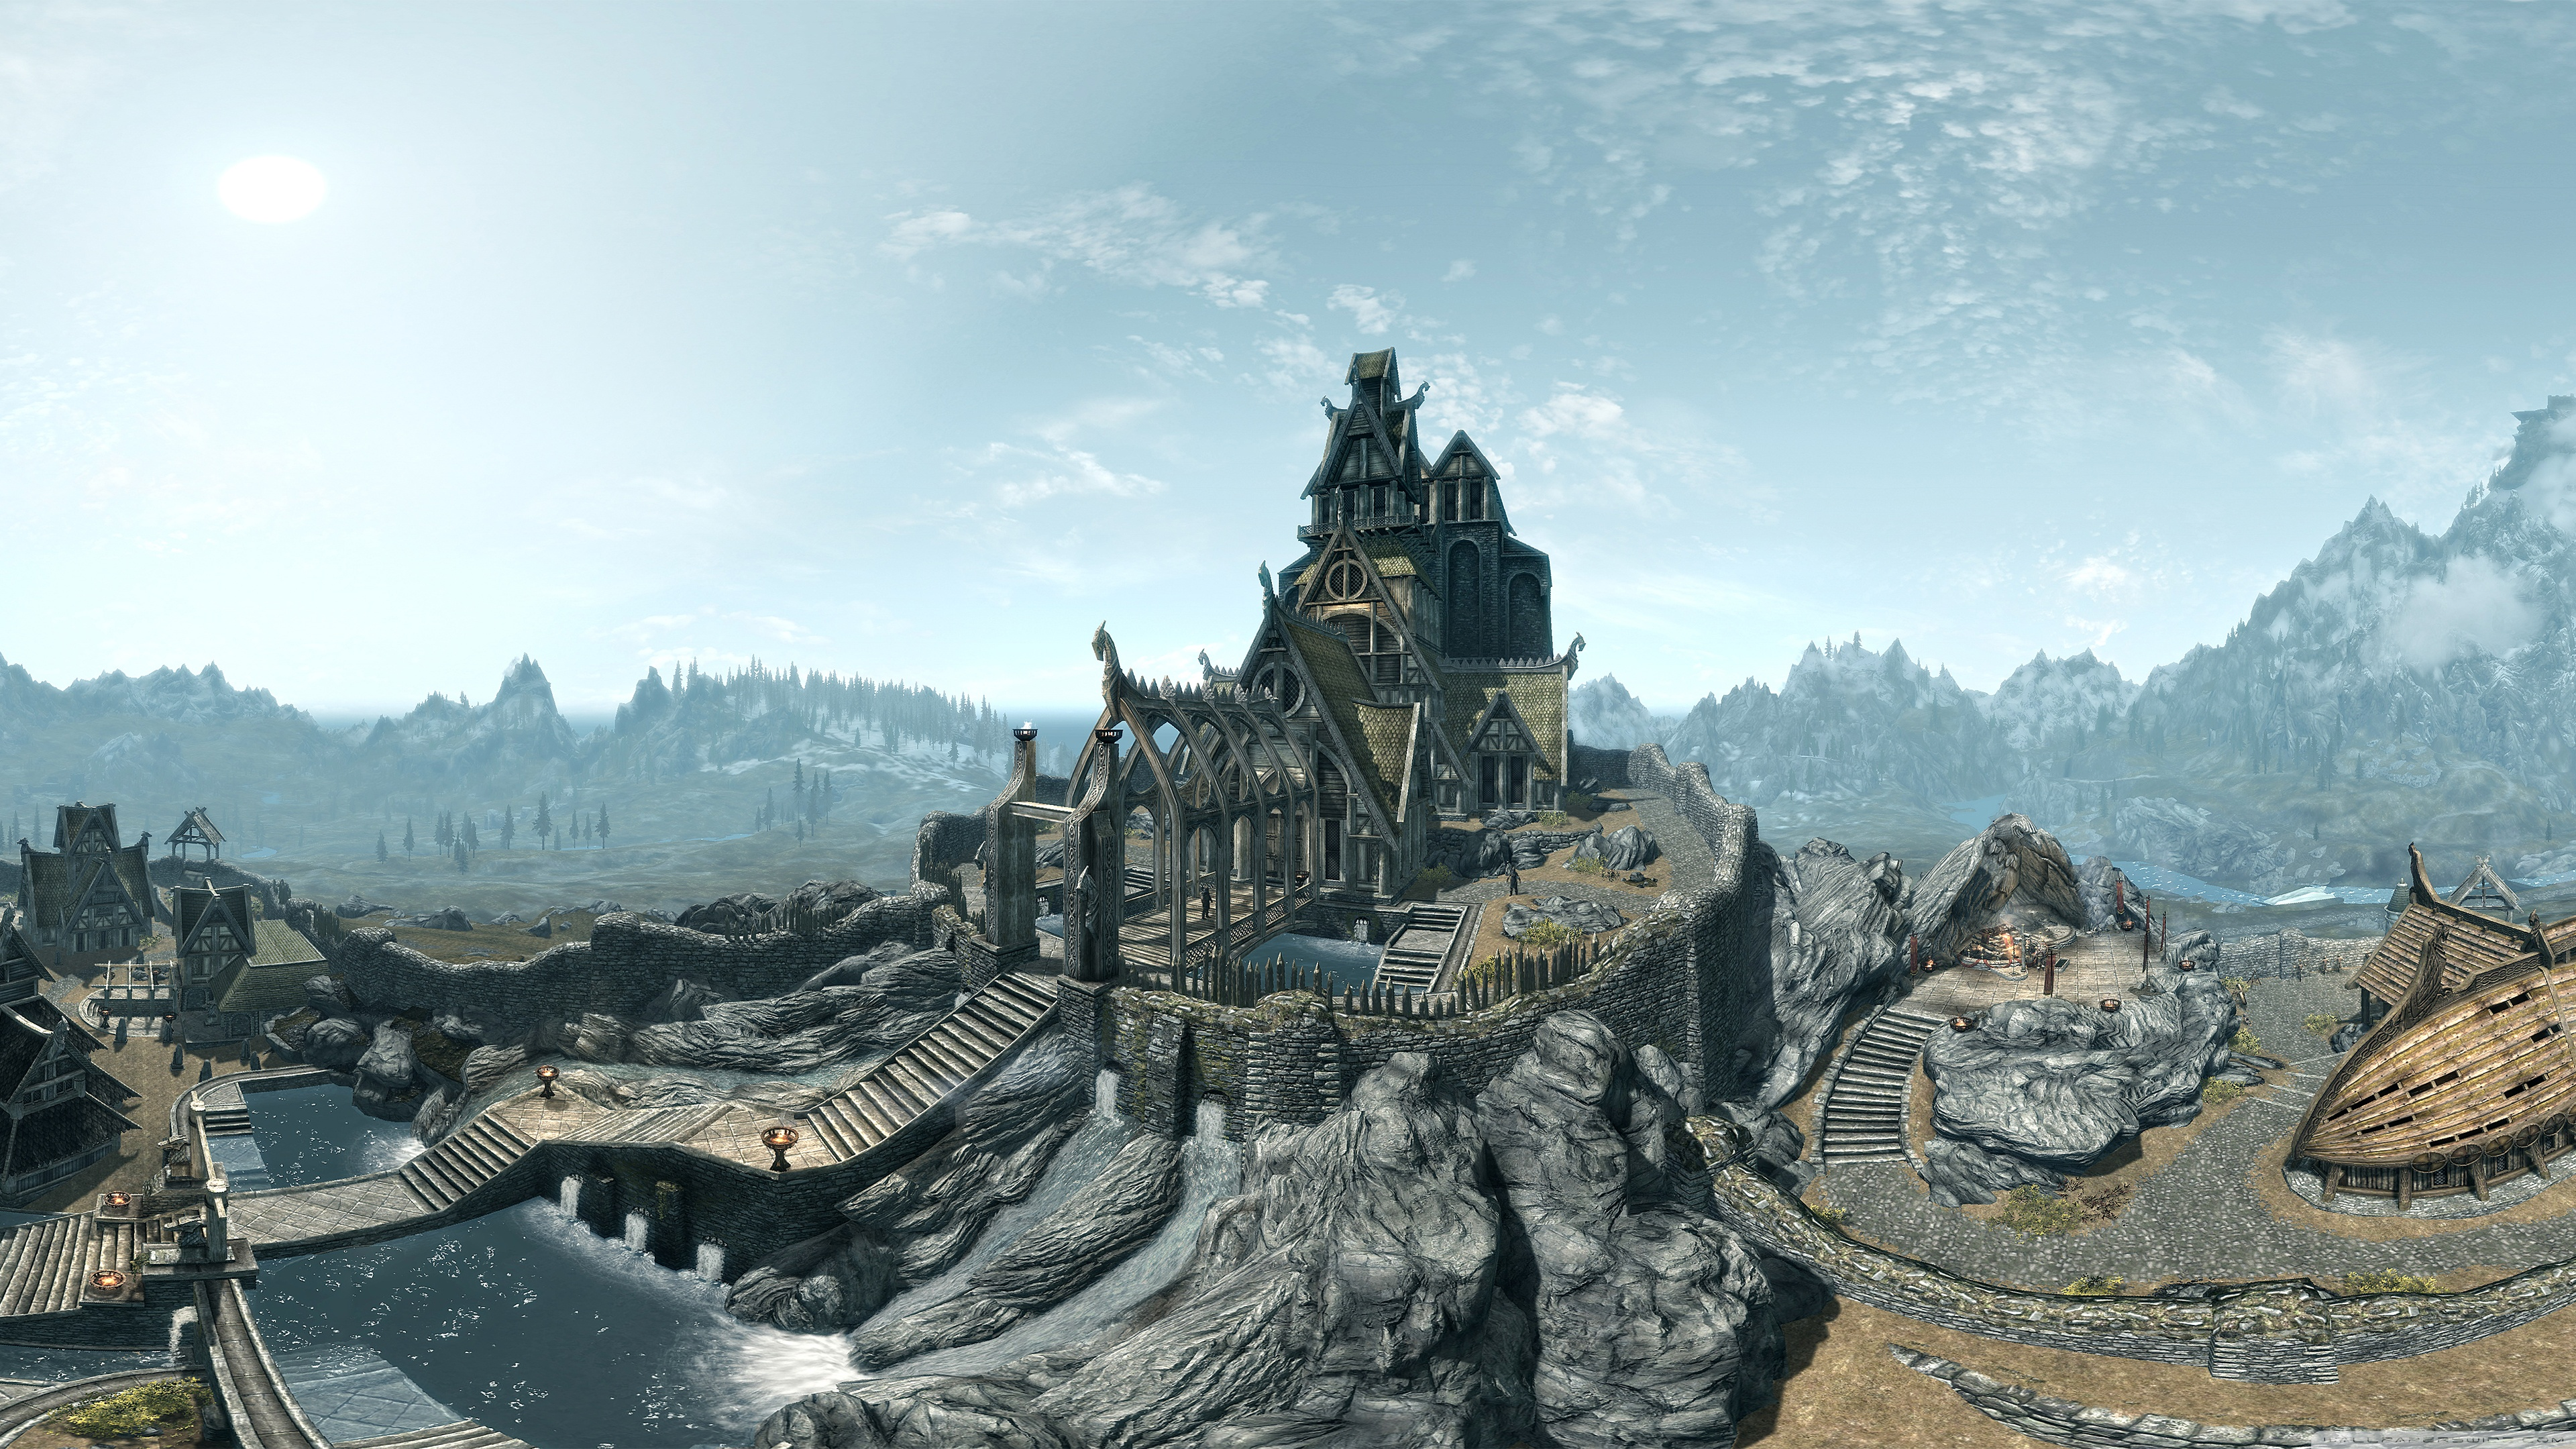 Download Free WallpaperWhiterun Birds Eye View The Elder Scrolls   Skyrim